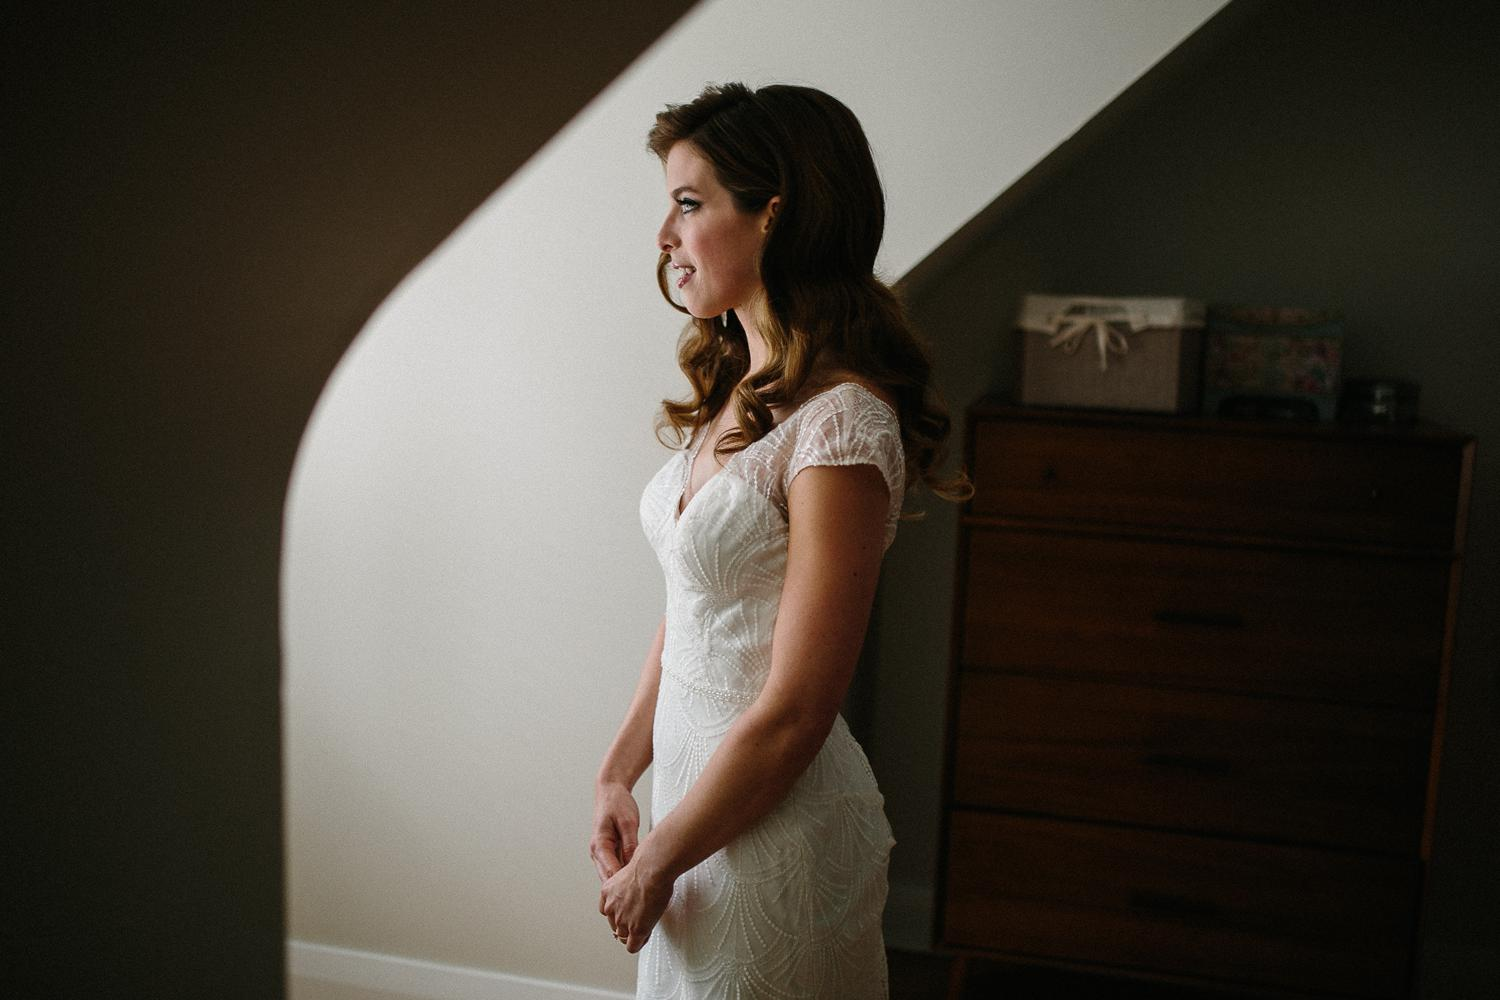 downtown ottawa wedding - kerry ford photography-012.jpg